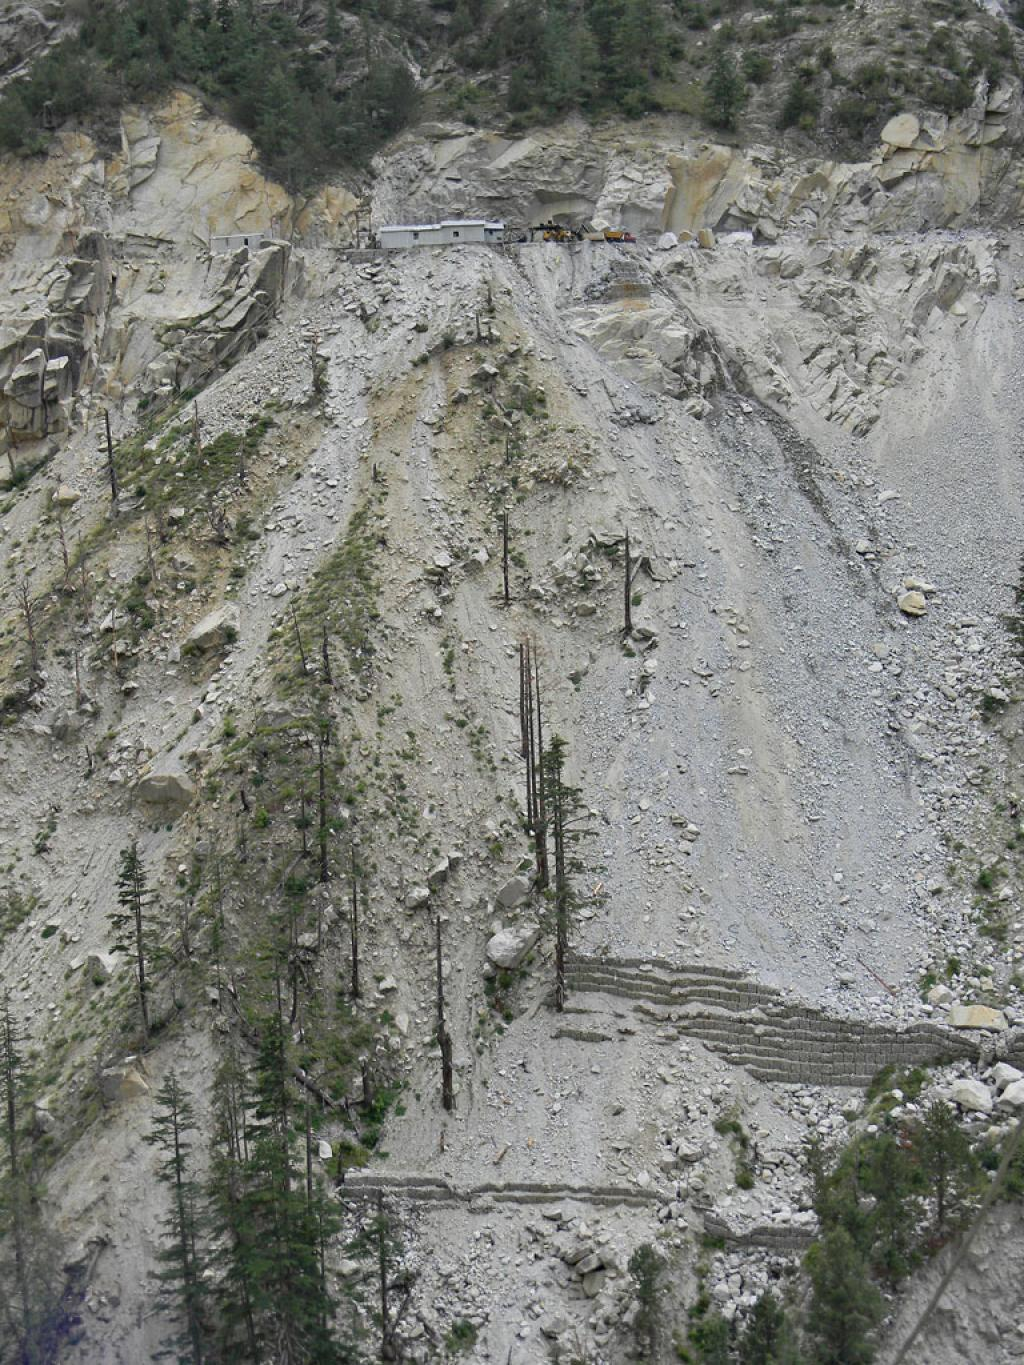 Construction activites of Tidong-1 hydro project destroy rich Deodar & Chilgoza Pine forest.Deforestation in Kinnaur has been a leading cause of soil erosion in the last few decades.